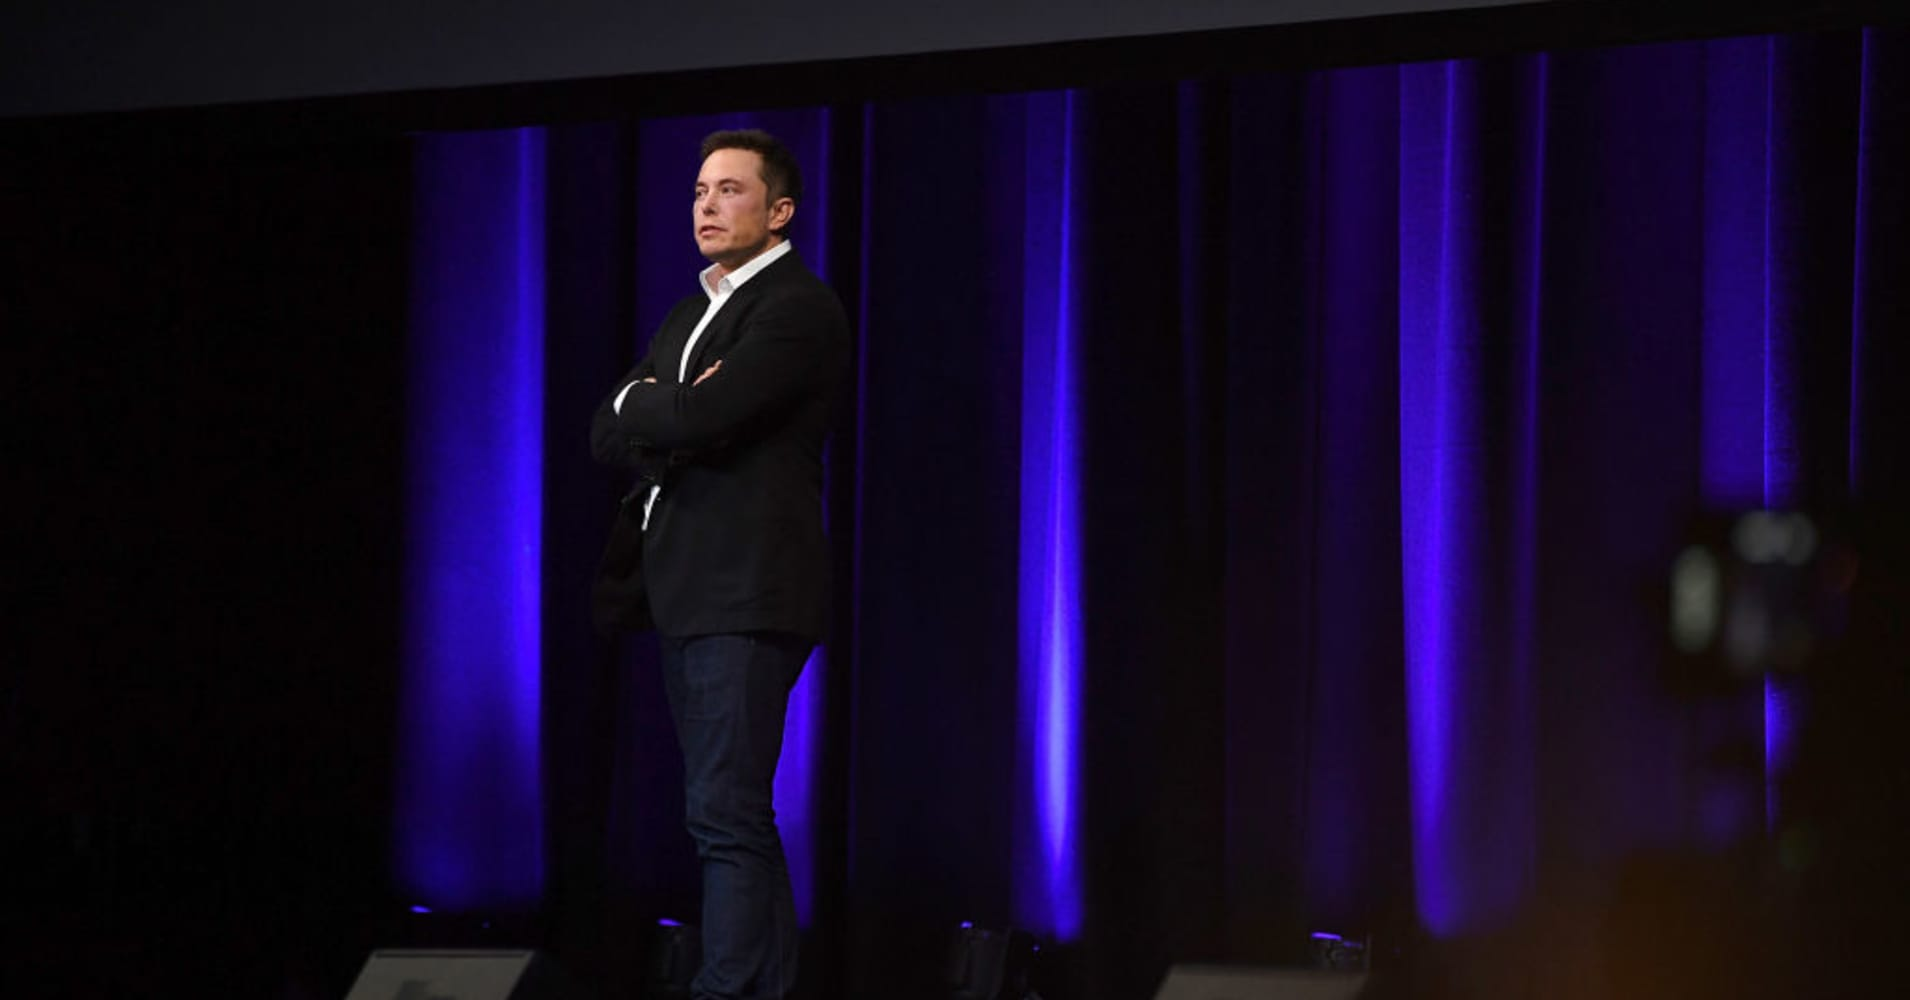 Elon Musk says SpaceX aiming for boots on Mars in 2024